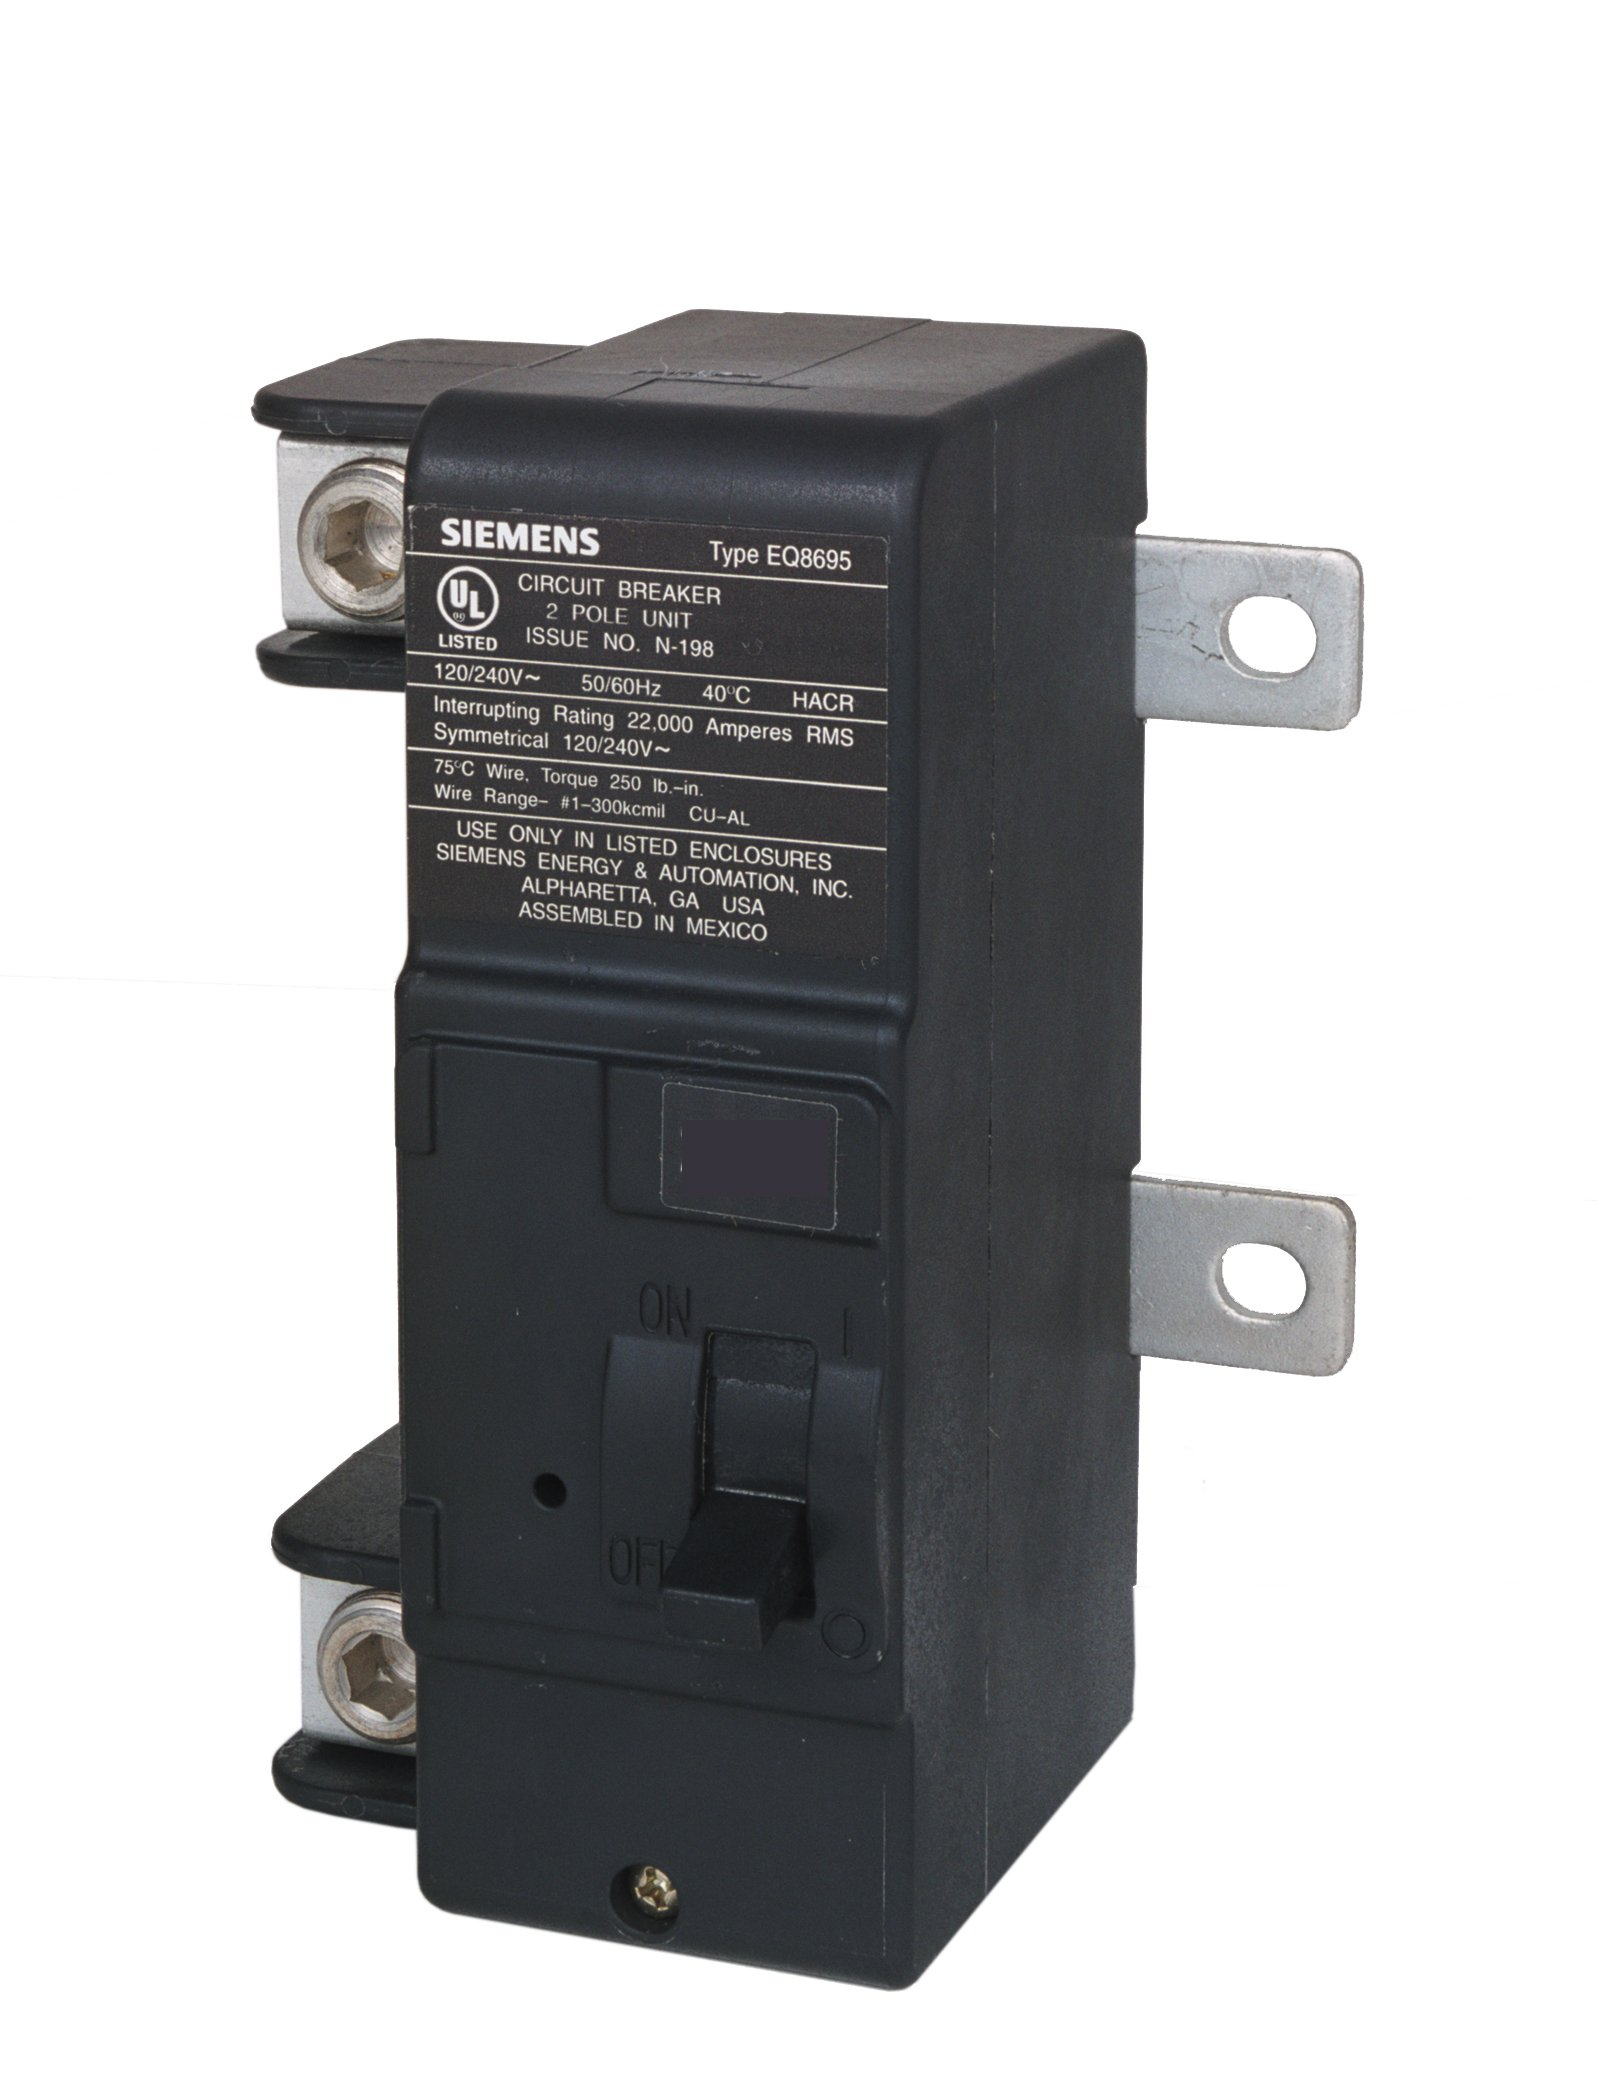 Murray MBK125M 125-Amp Main Circuit Breaker for Use in Rock Solid Type Load Centers